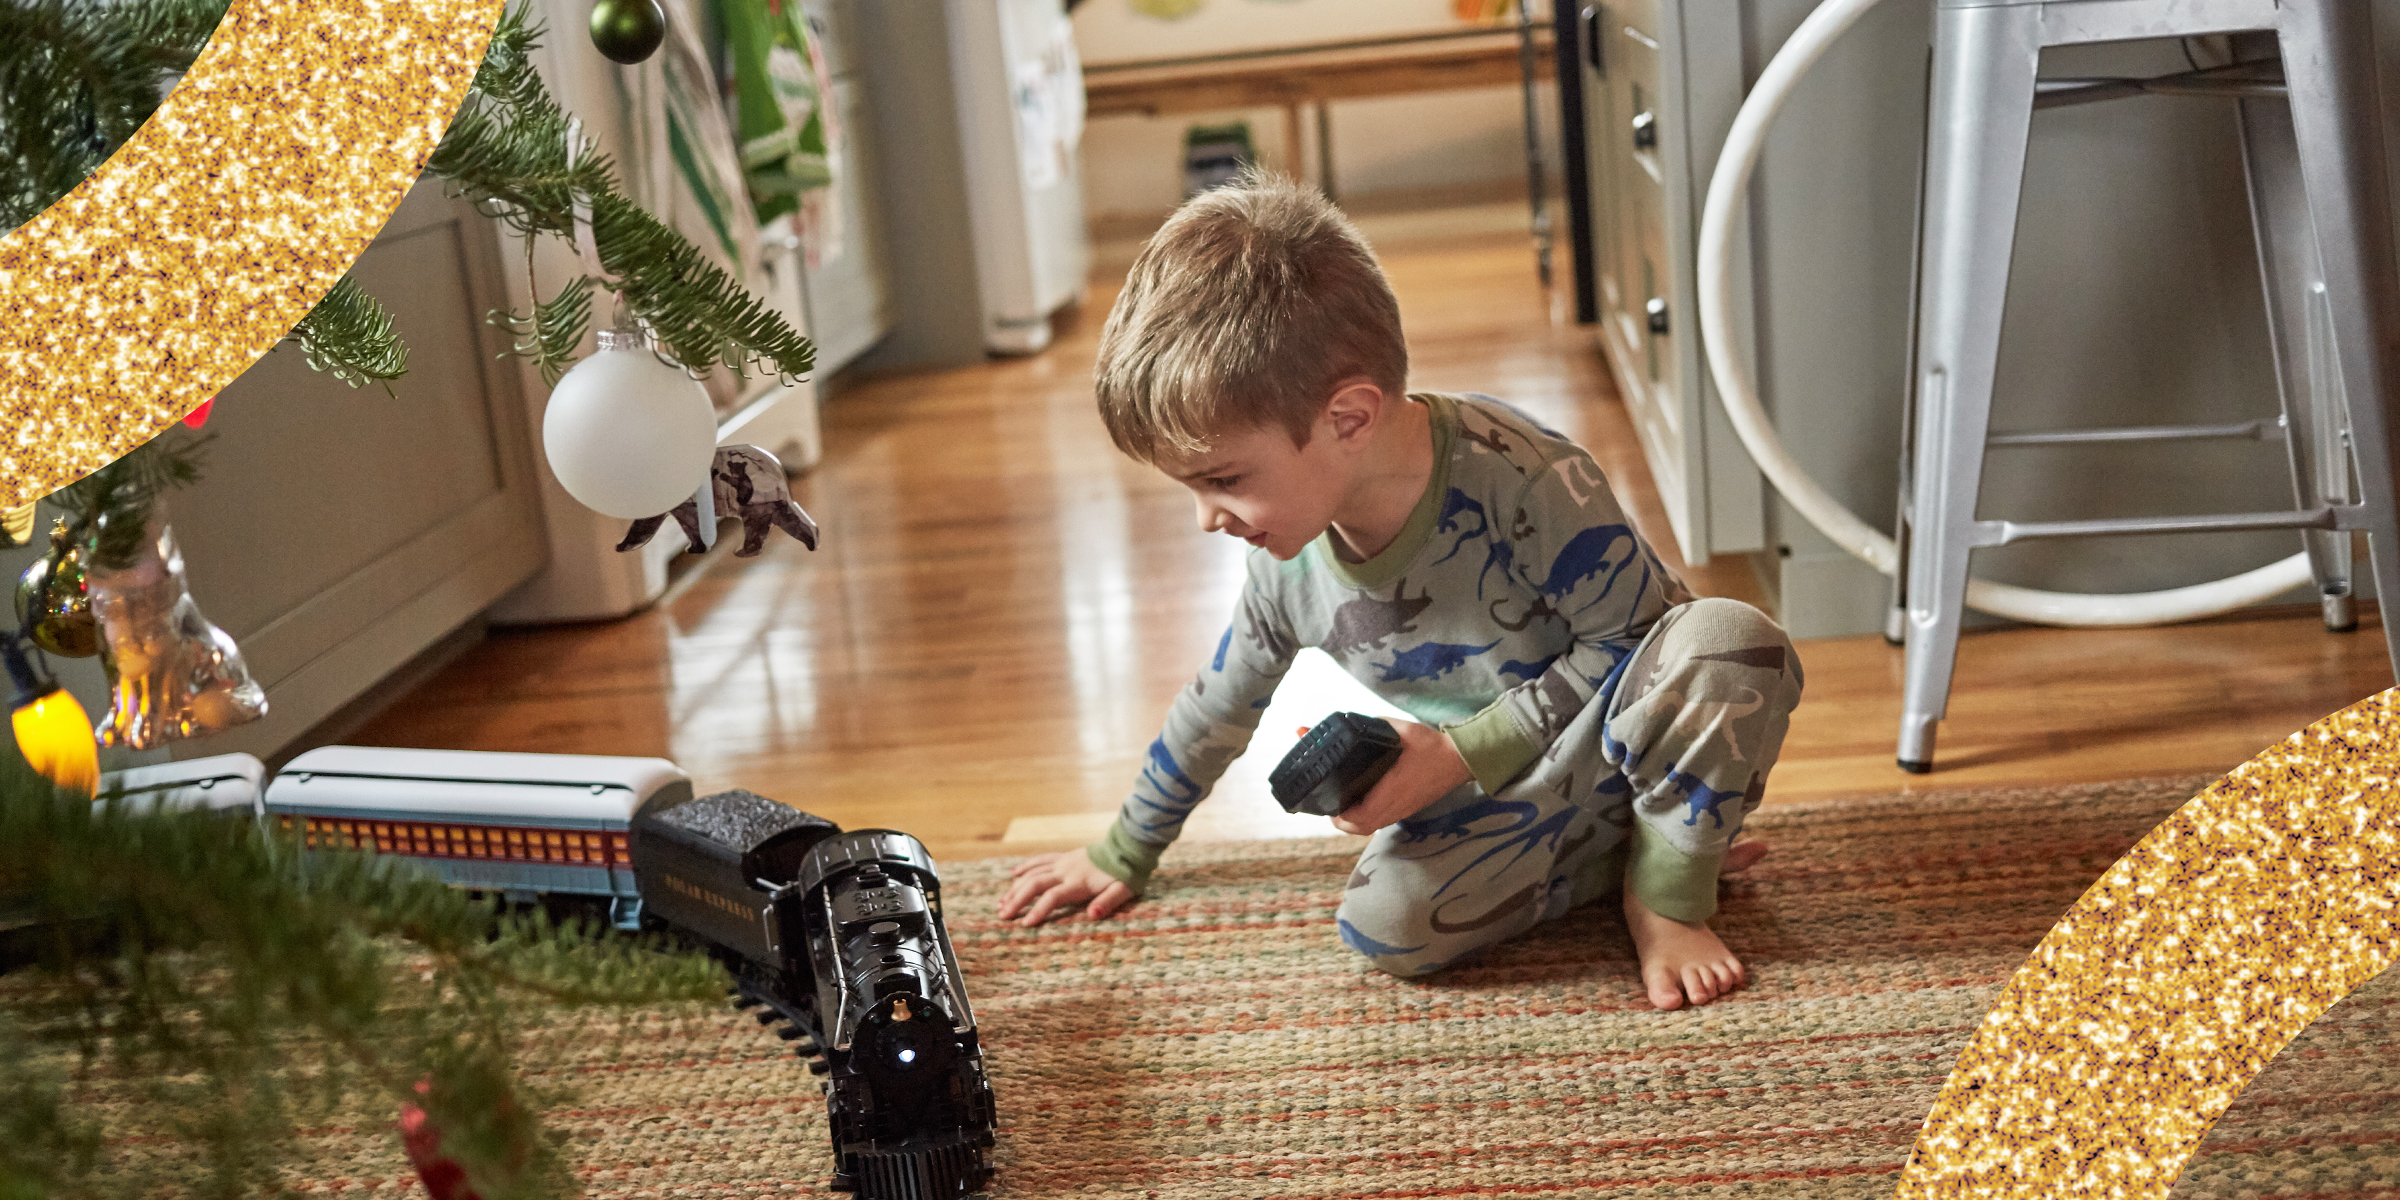 Christmas 2021 Todler Gift Ideas 44 Best Gifts And Toys For 3 Year Olds In 2021 Today